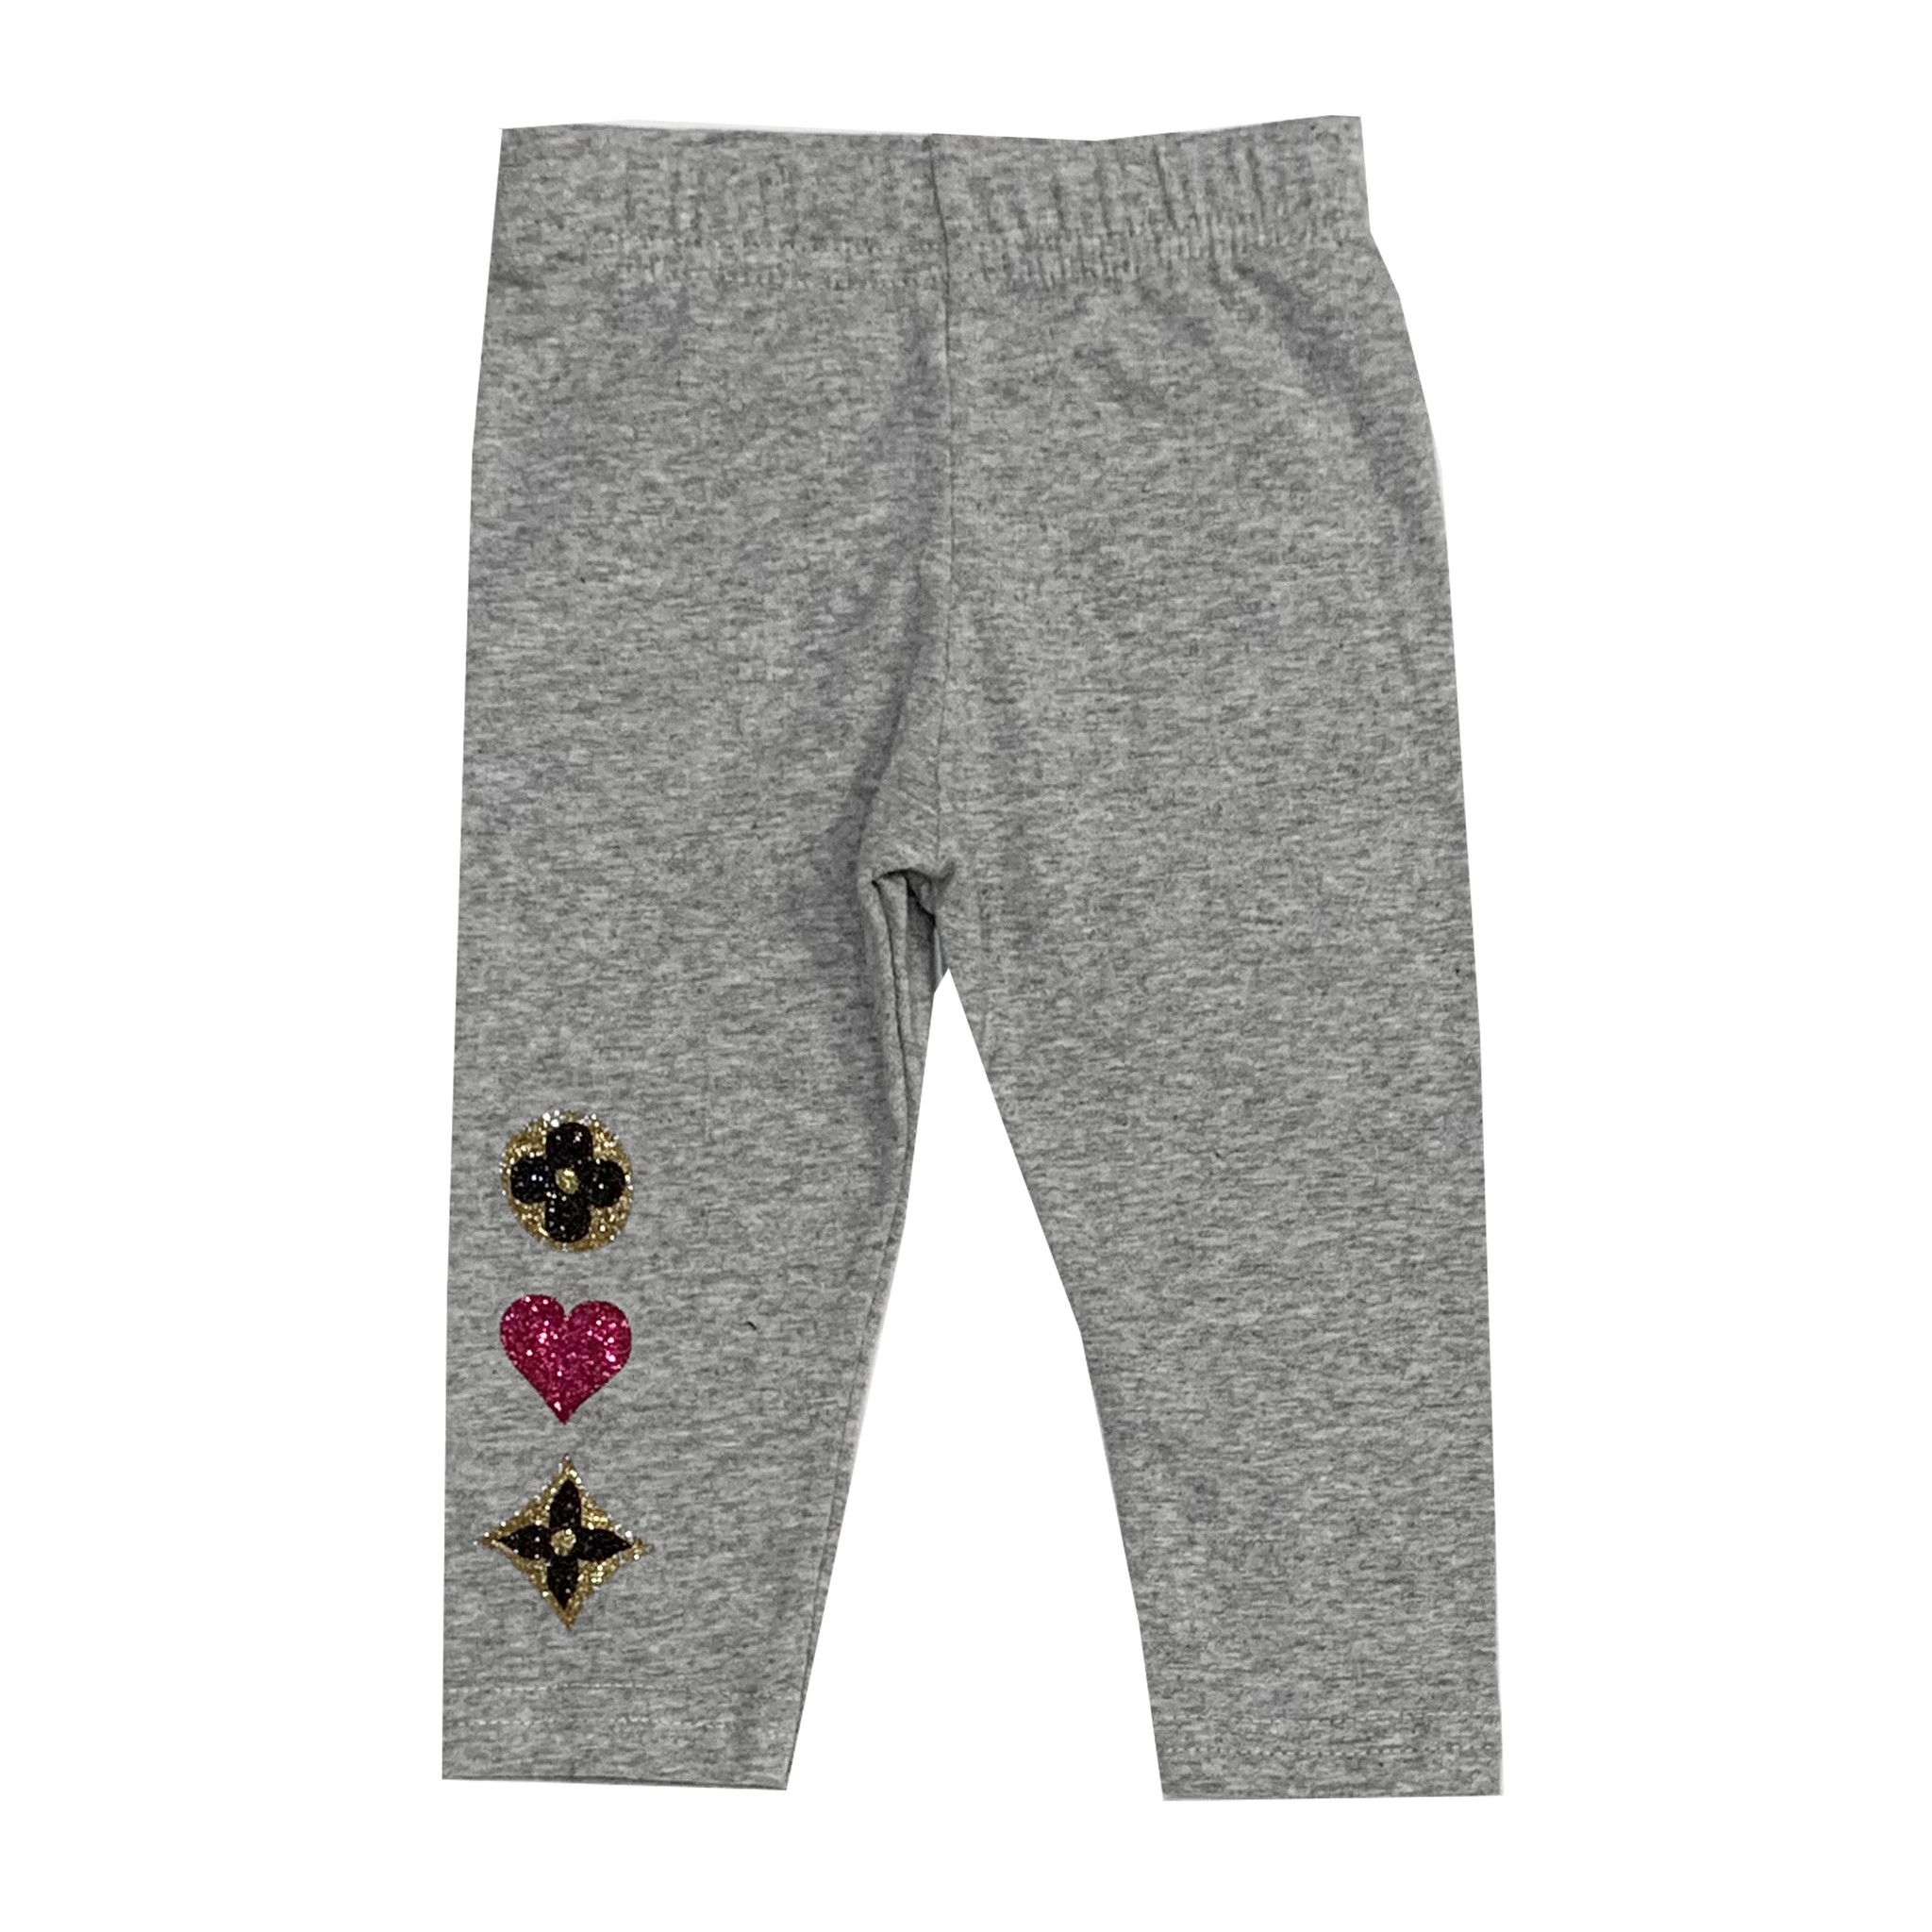 Small Change Grey Leggings with Love Icons